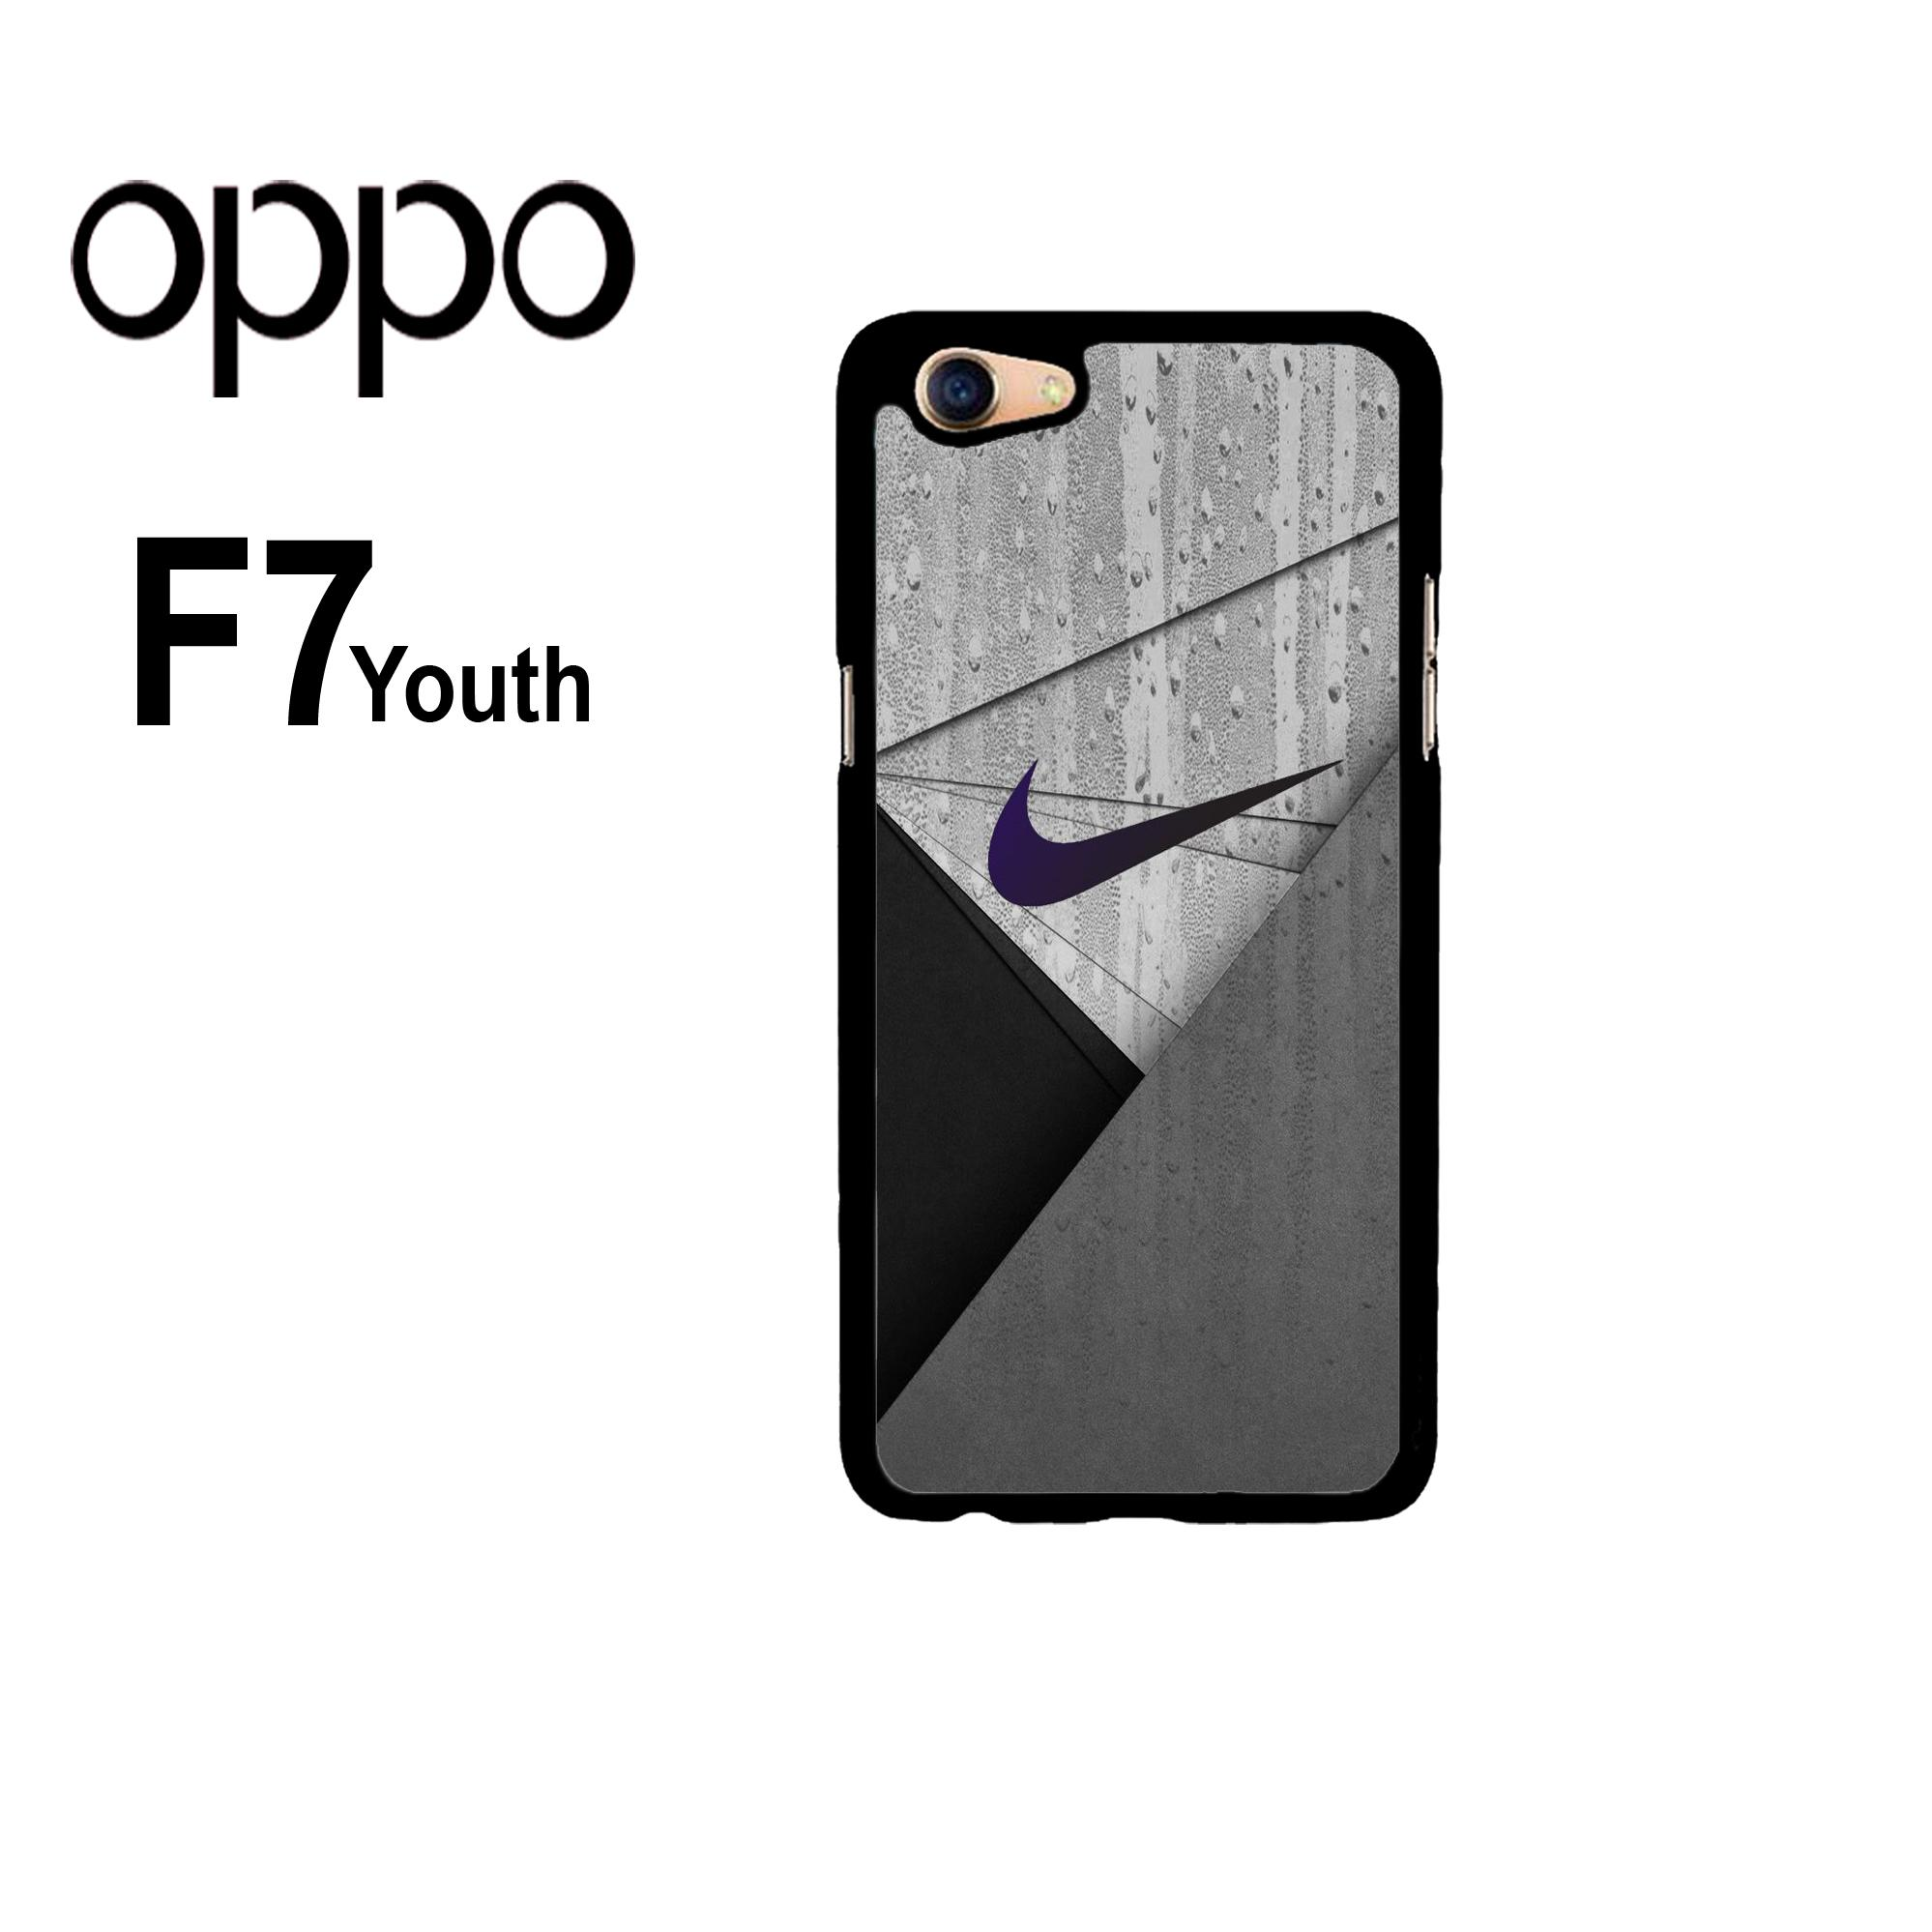 Rajamurah fashion printing case oppo f7 youth - 15